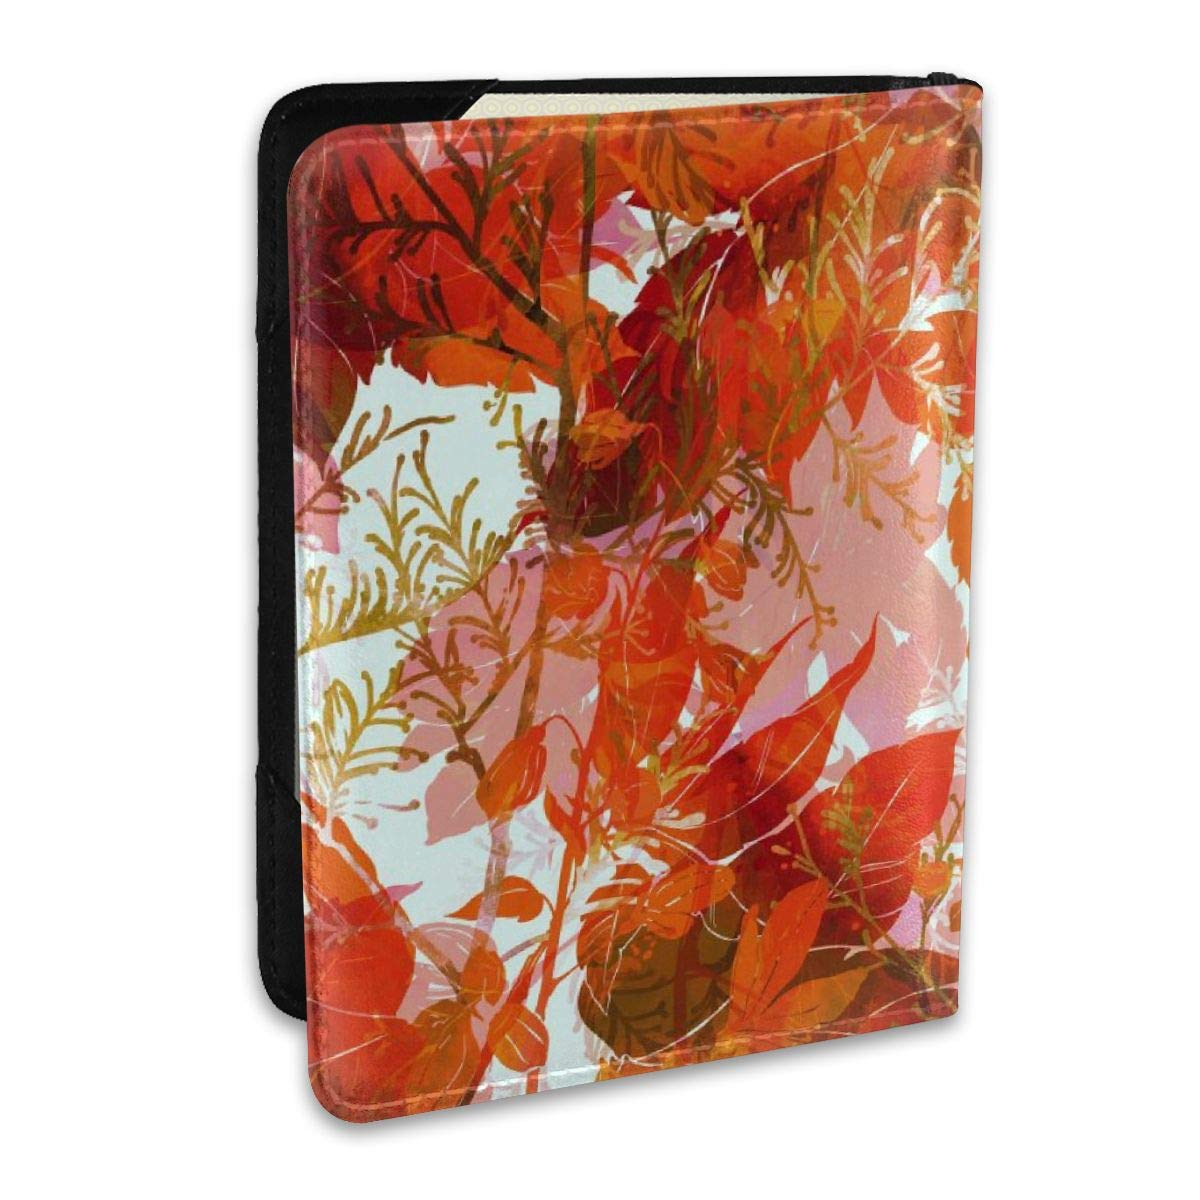 Herbs Flowers And Leaves Prints Fashion Leather Passport Holder Cover Case Travel Wallet 6.5 In